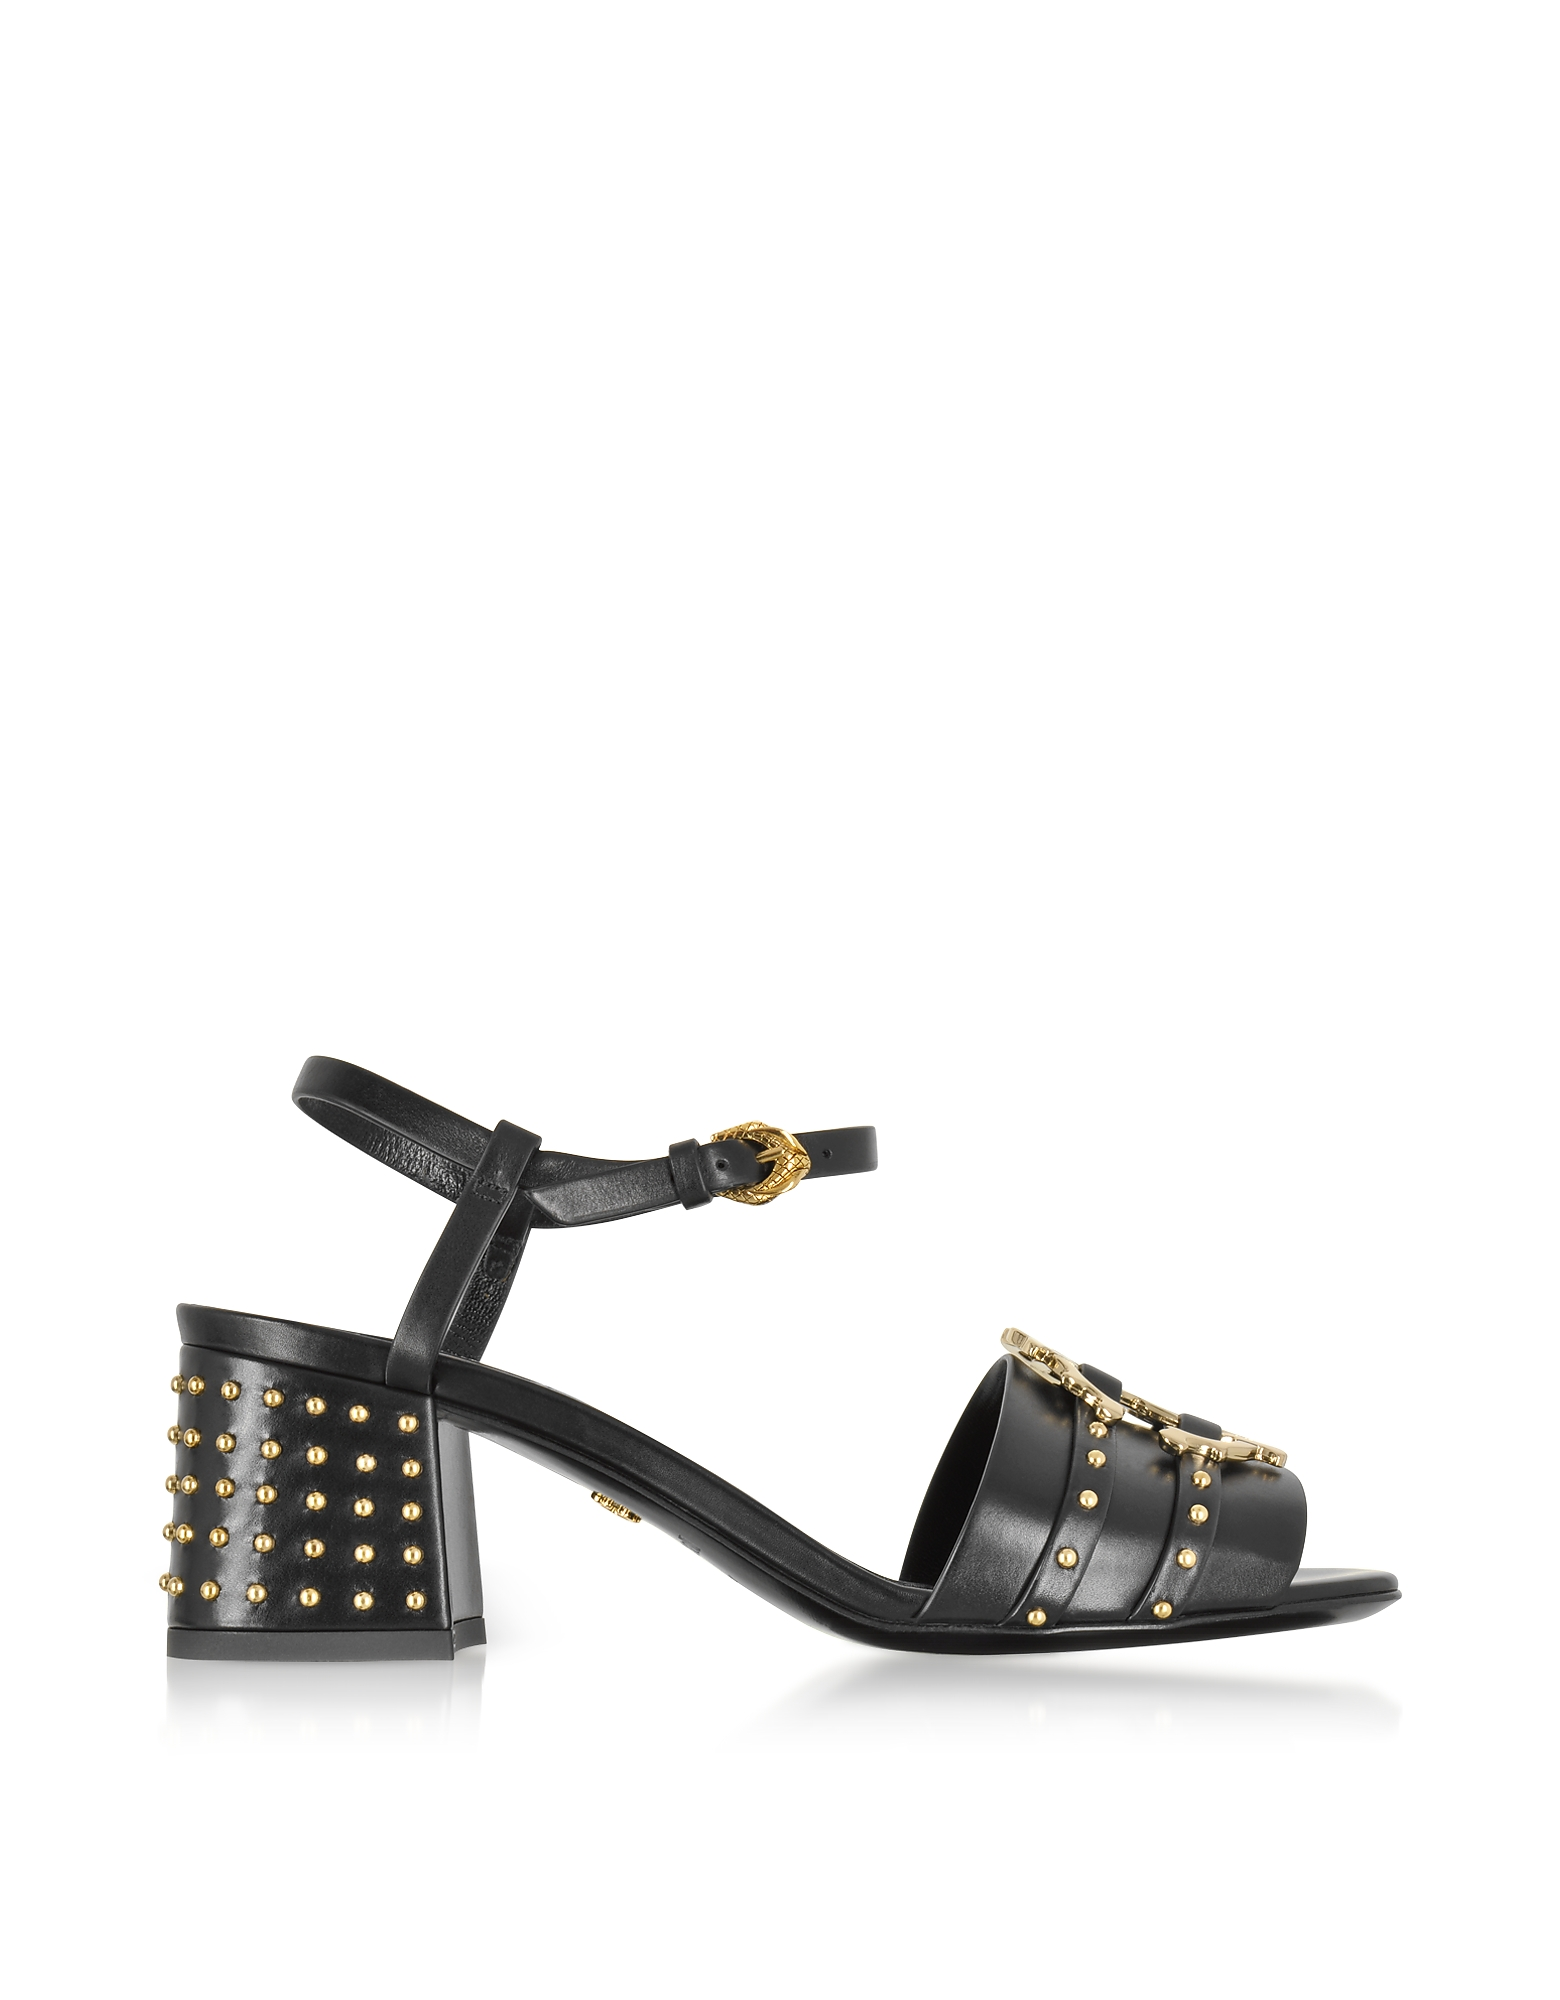 Roberto Cavalli Shoes, Black Leather Studded Sandals